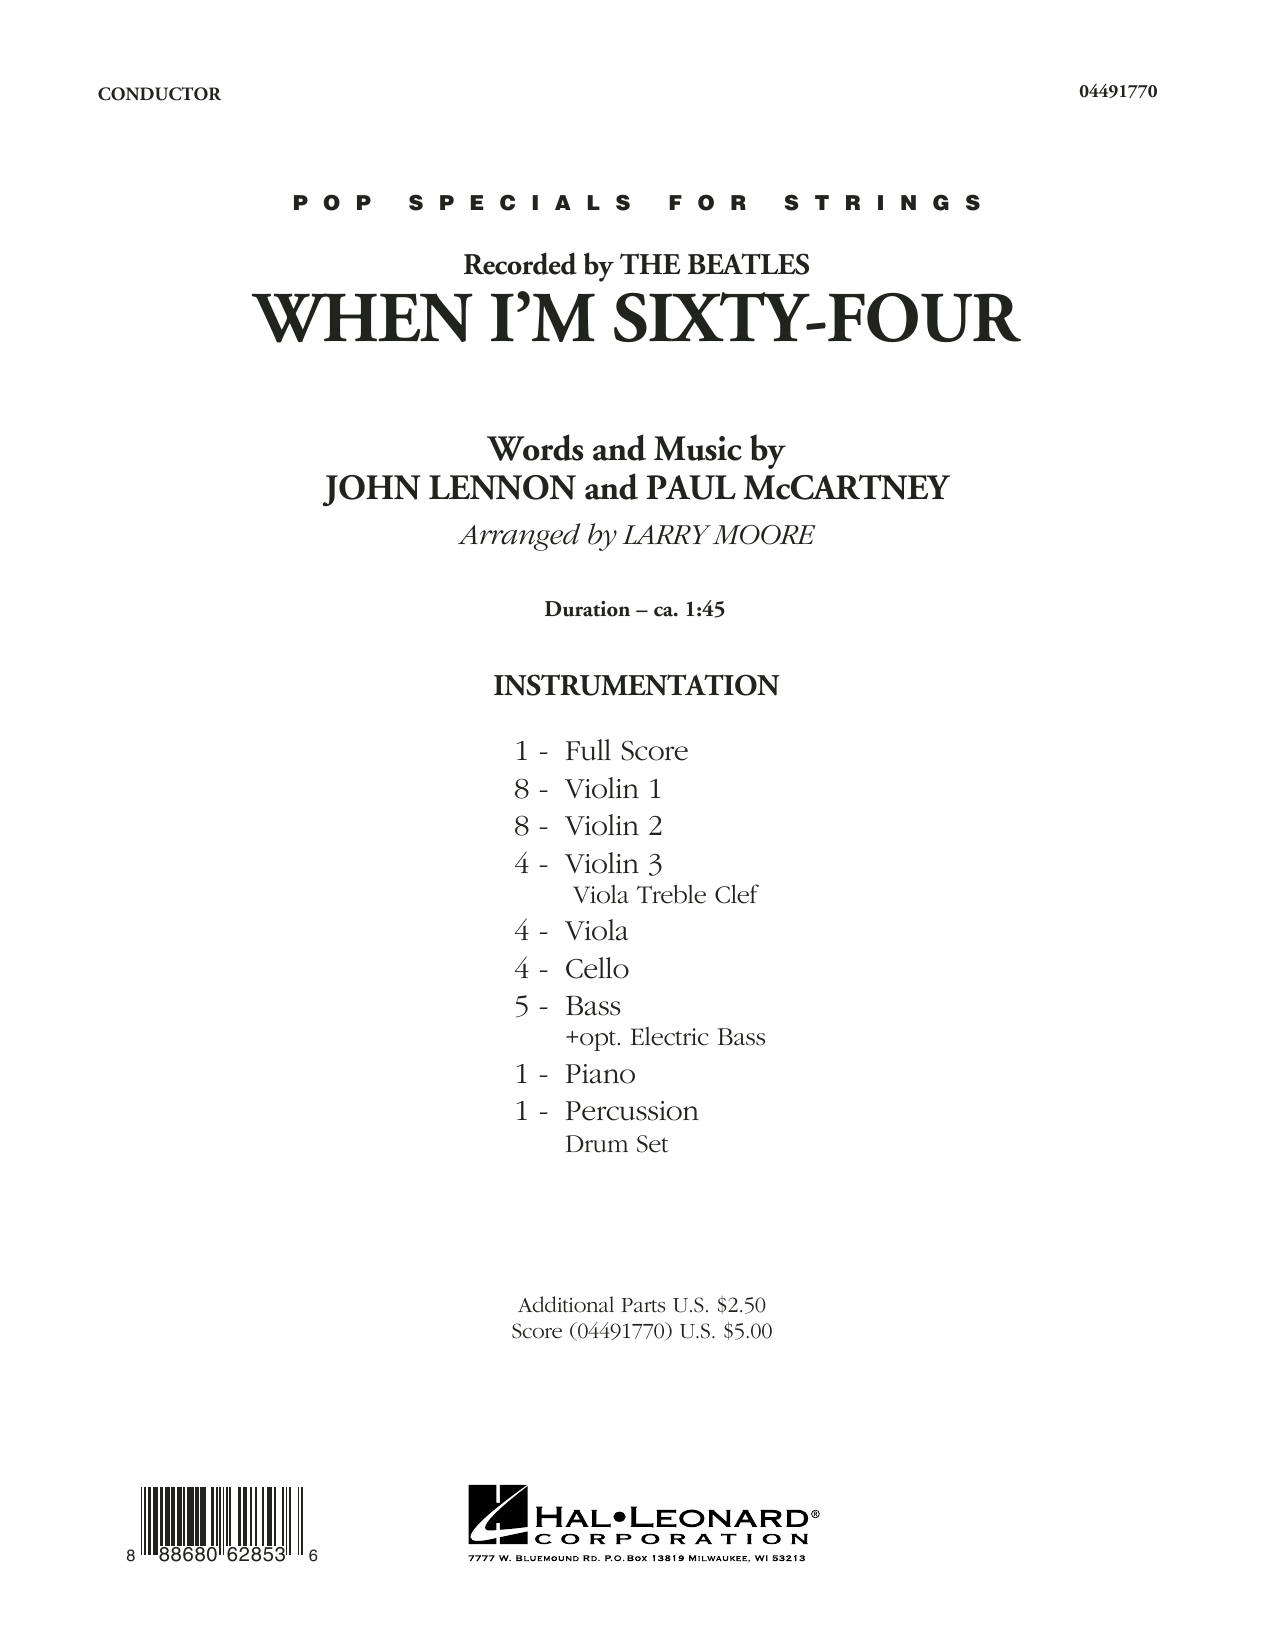 When I'm Sixty-Four (COMPLETE) sheet music for orchestra by Larry Moore